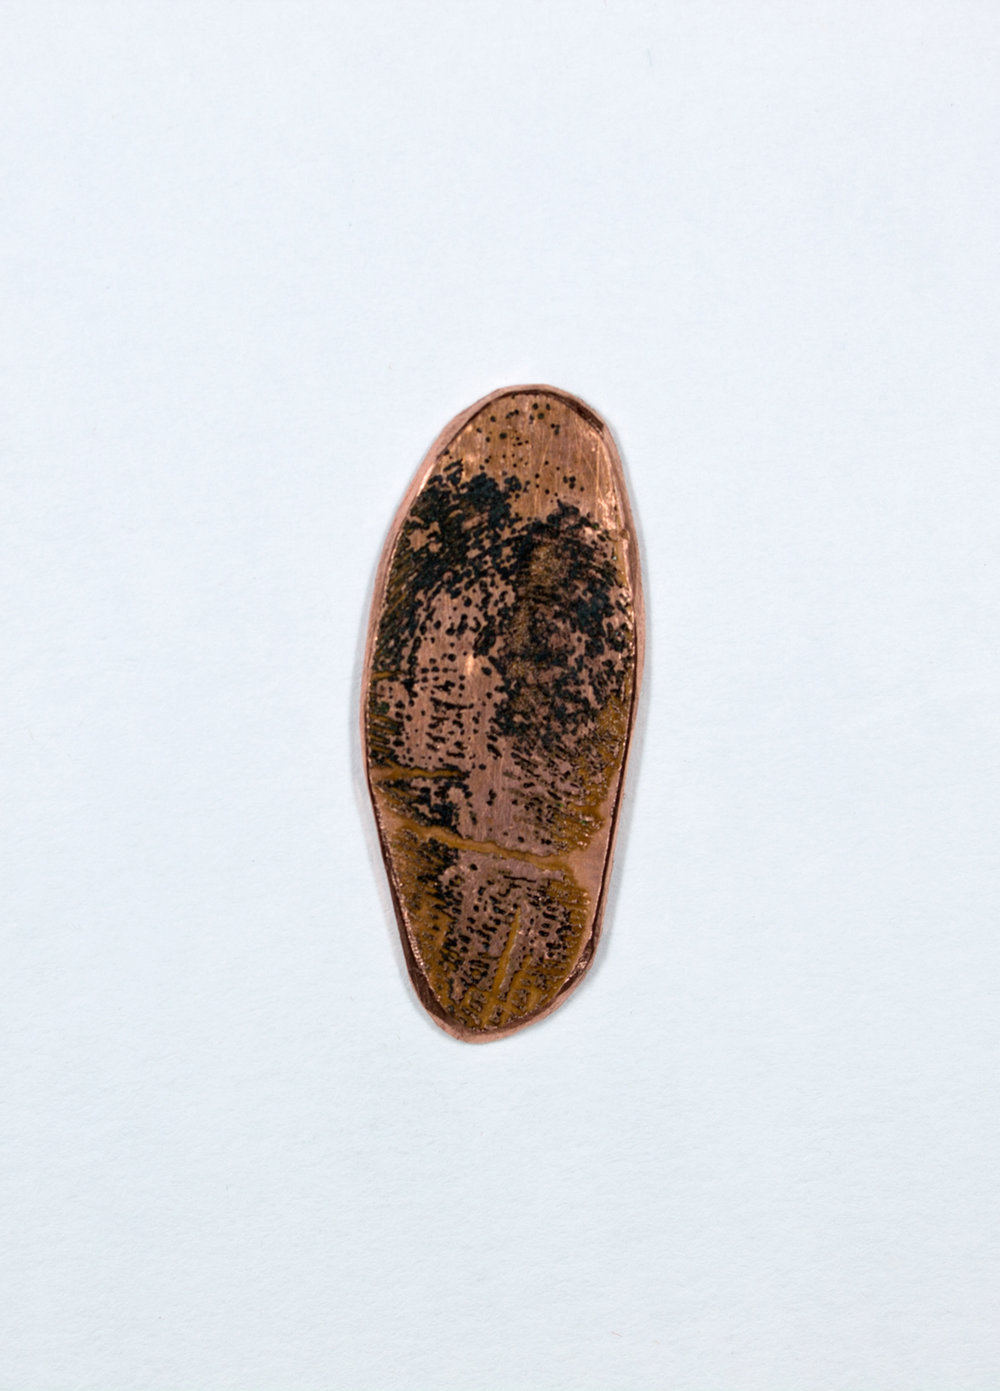 Etched Copper Plate of Finger Print 1